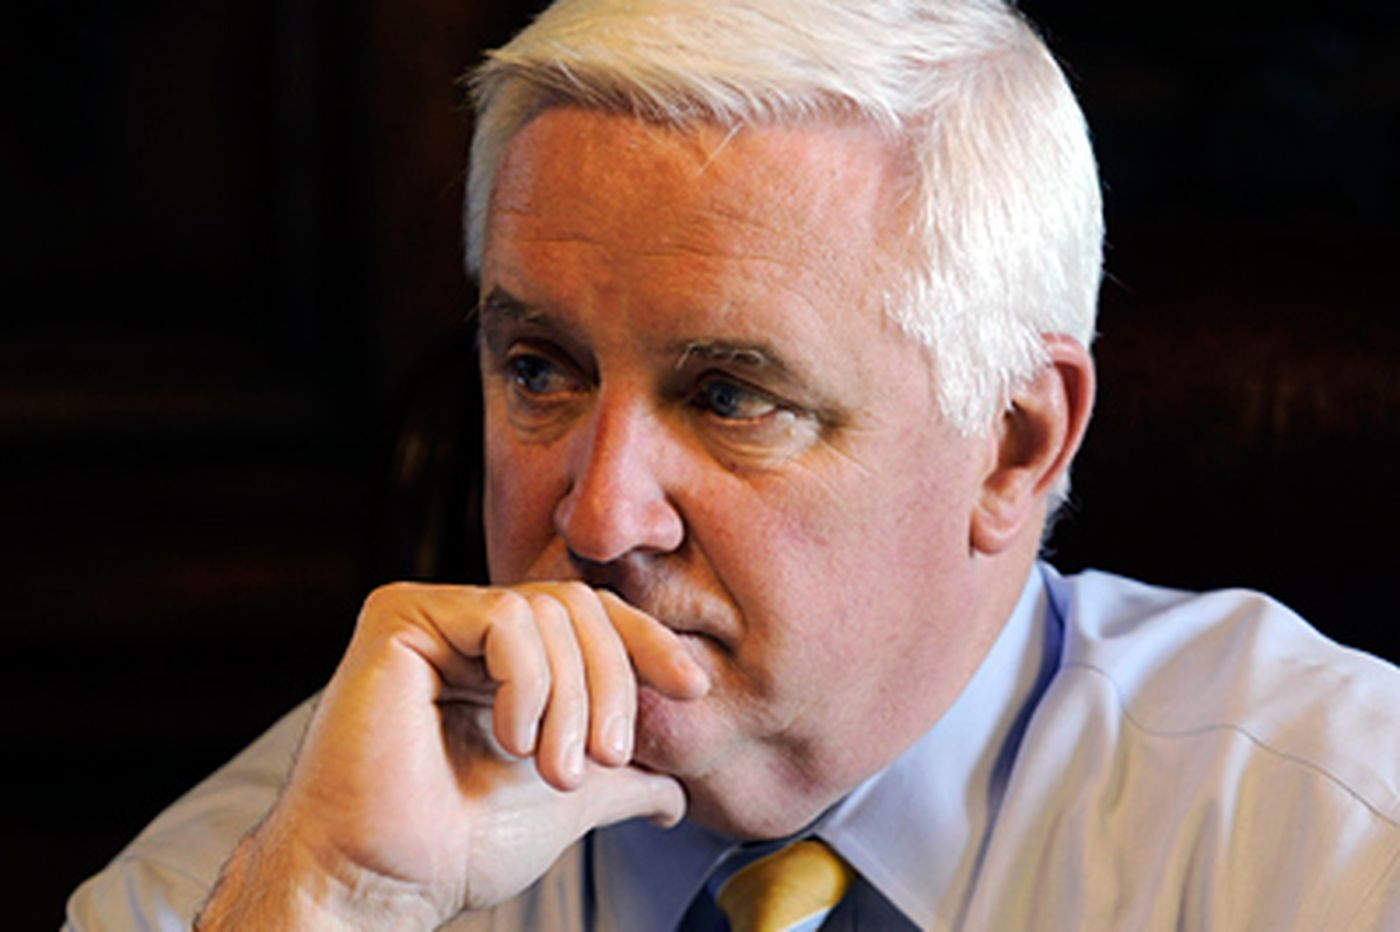 Corbett says he has an open mind on apportioning electoral votes